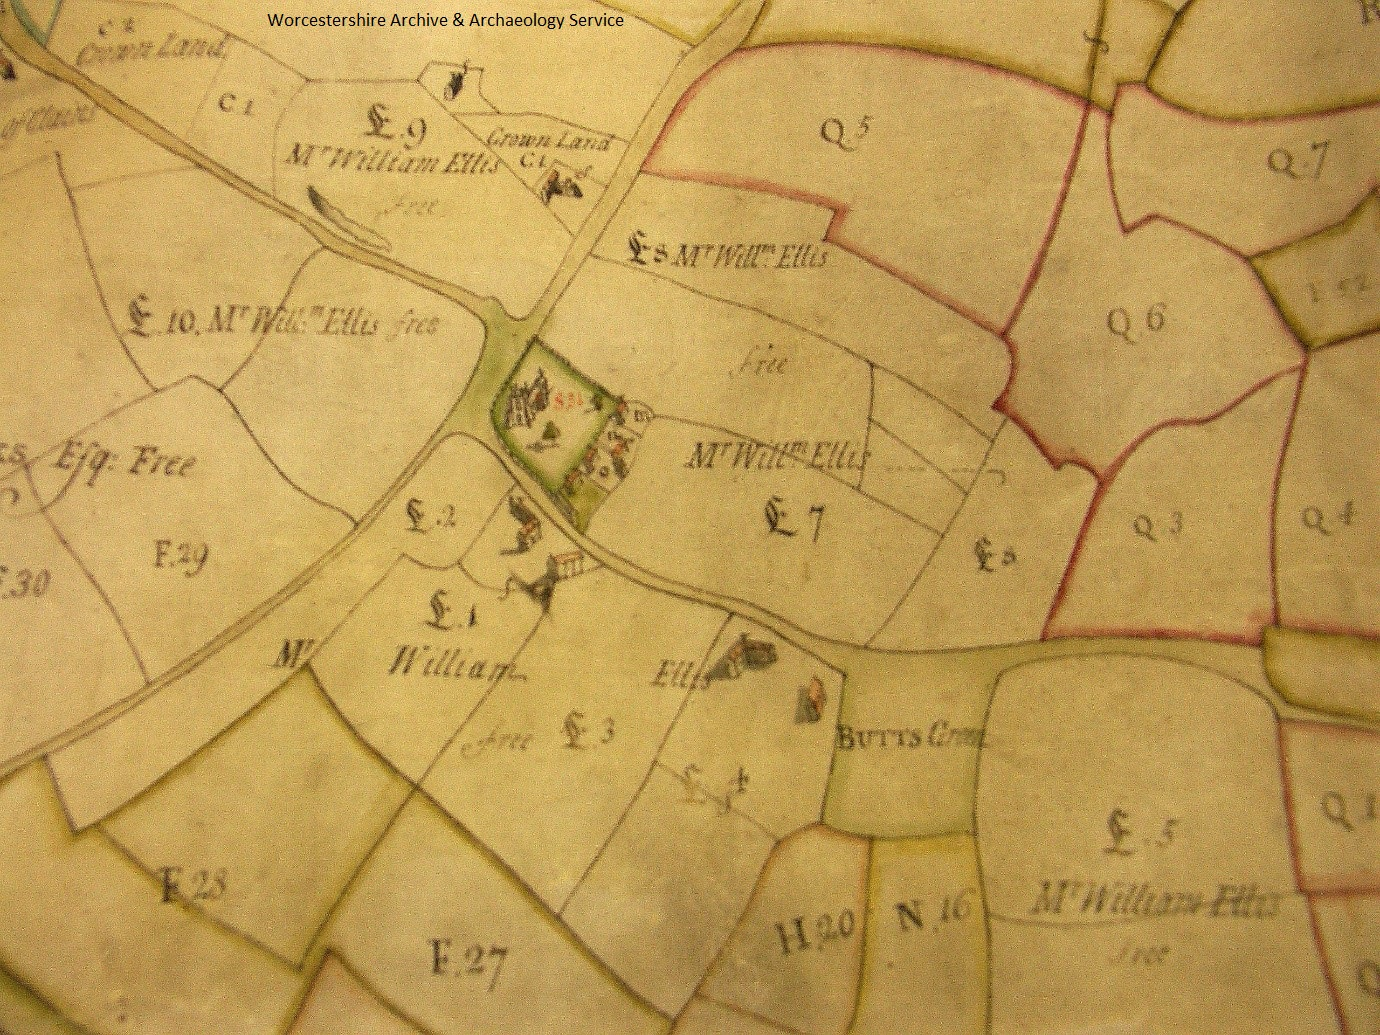 Doharty map of Claines, 1751, showing Claines Church